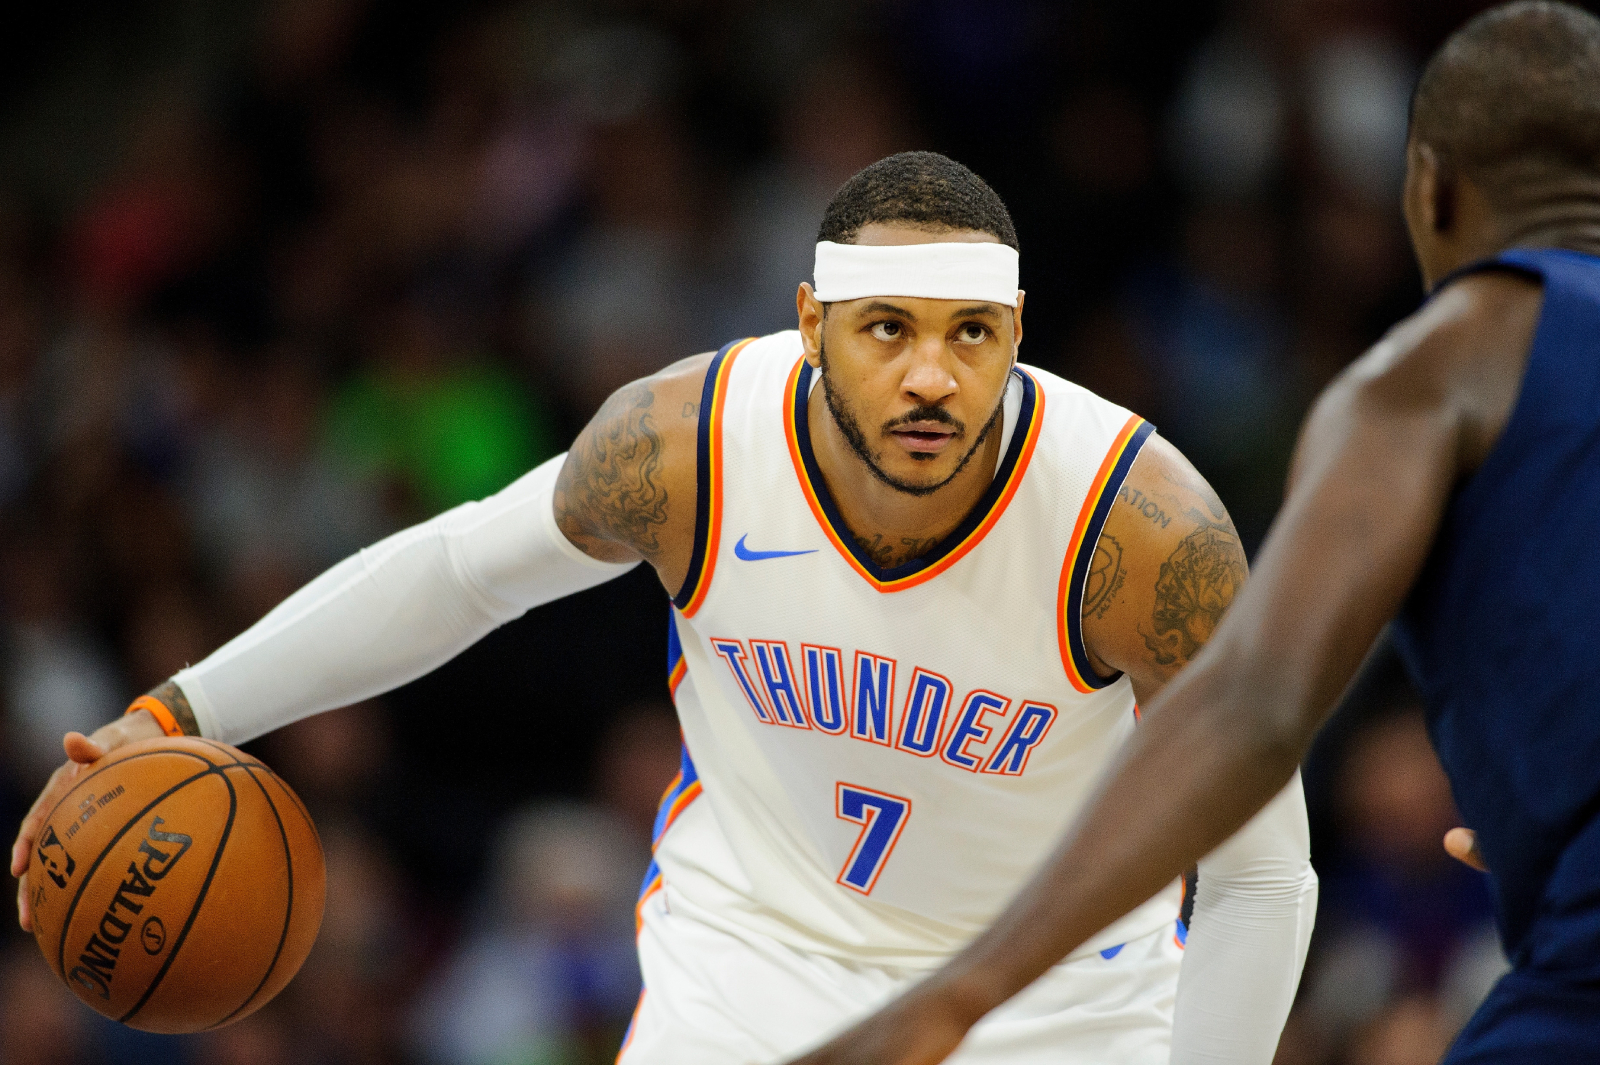 Things did not work out between Carmelo Anthony and the Oklahoma City Thunder. Anthony recently revealed what happened between him and OKC.